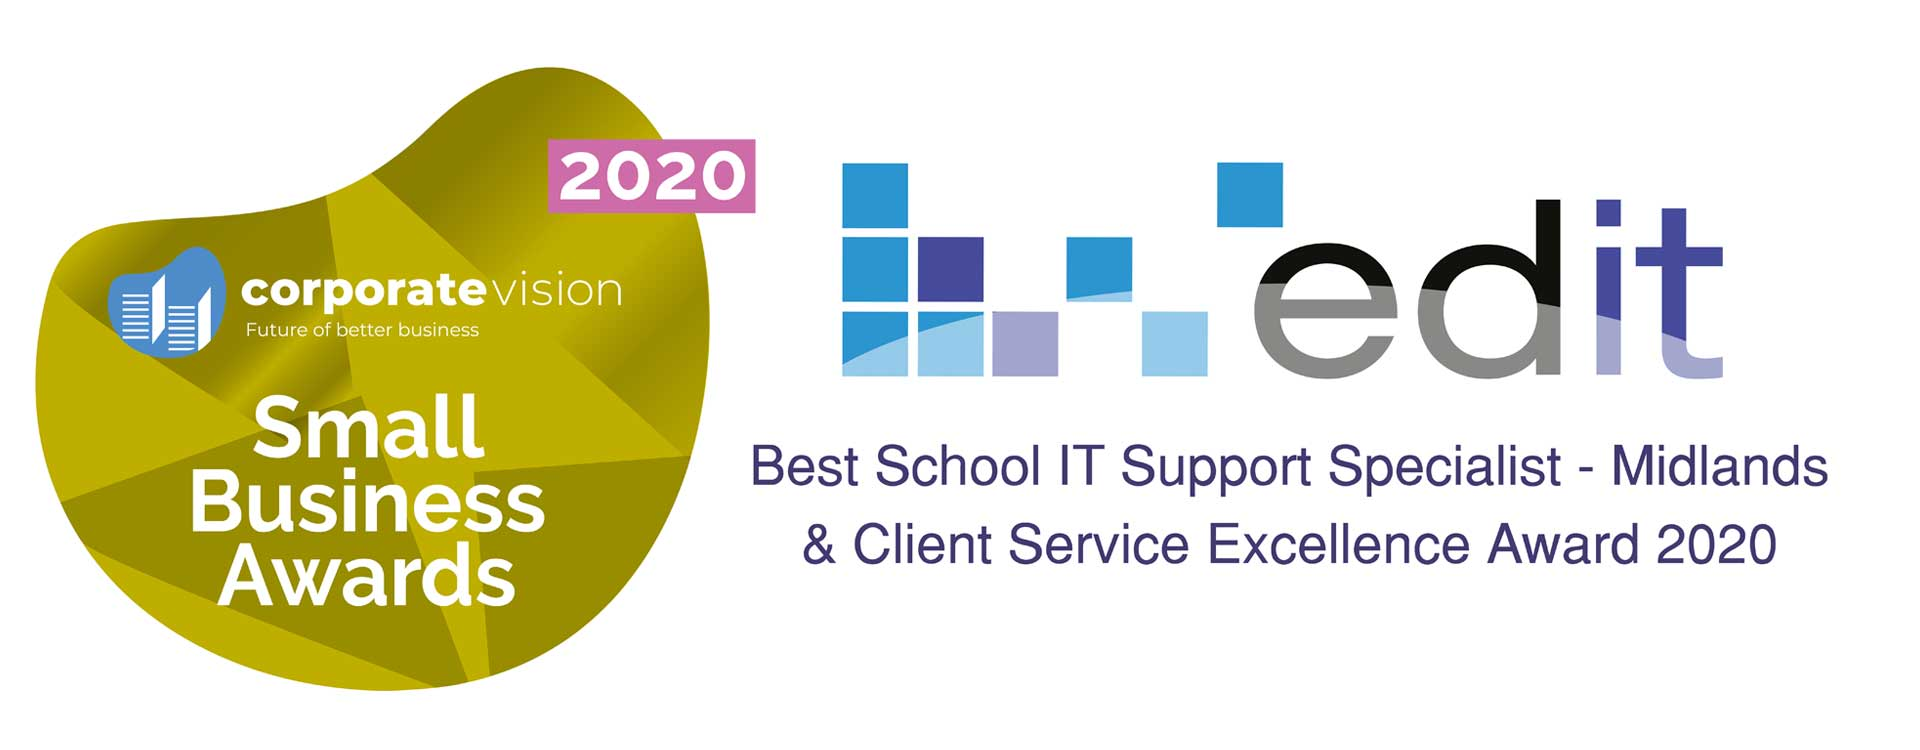 Small Business Award 2020 - Best Schools IT Support